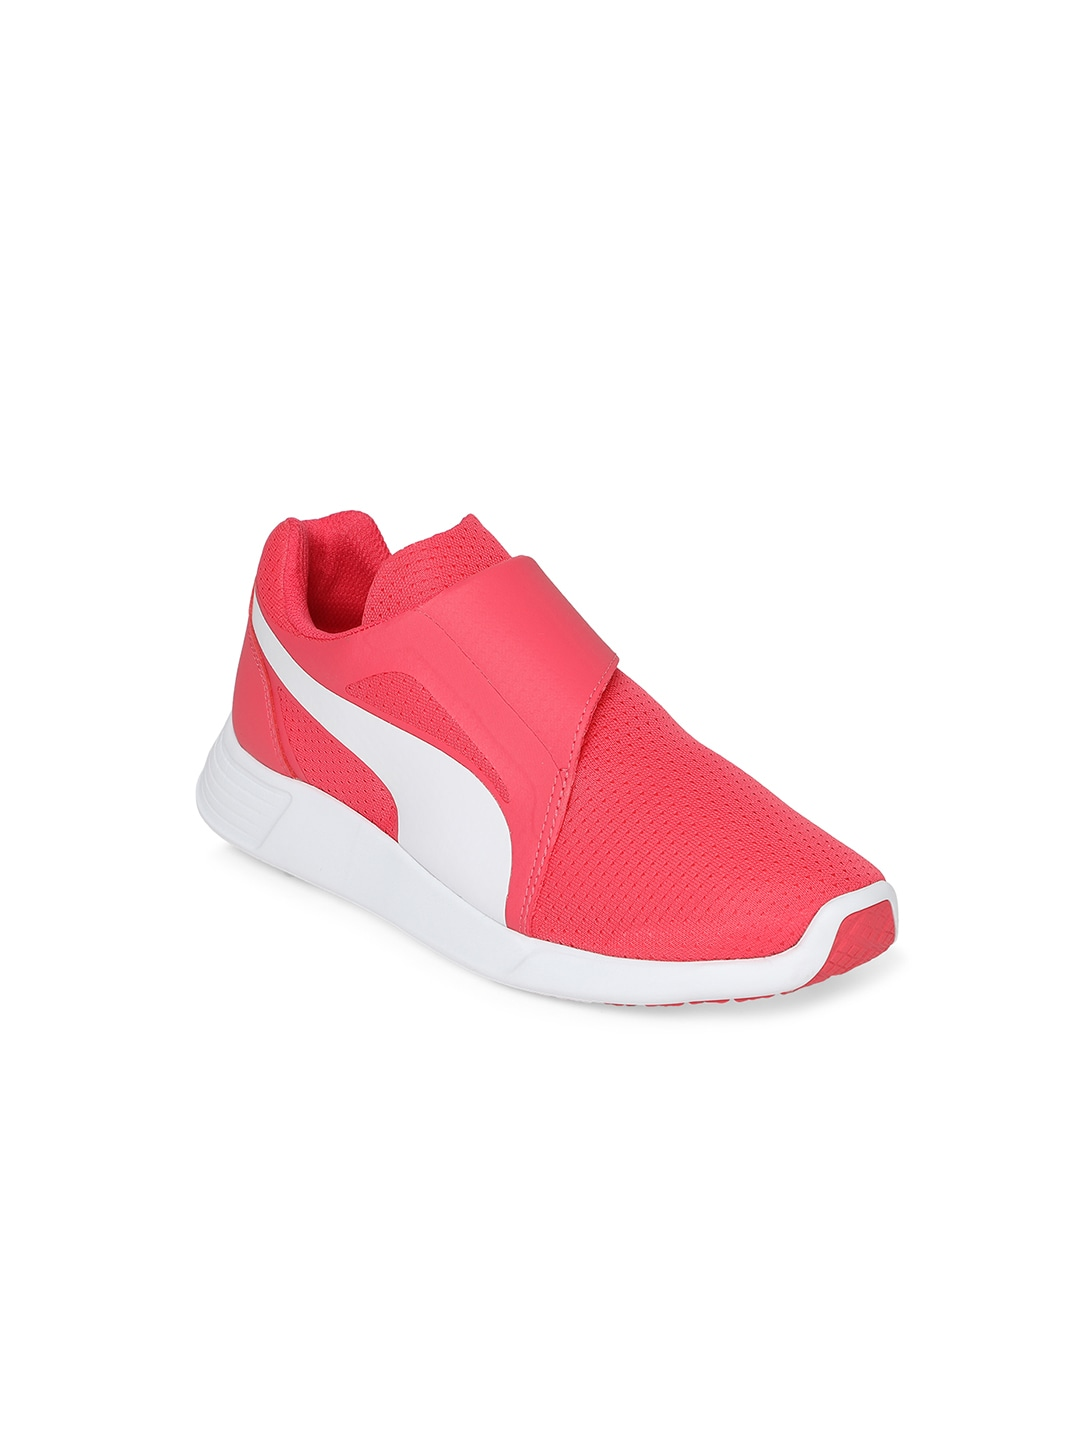 Girls Puma Casual Shoes - Buy Girls Puma Casual Shoes online in India c4f79e153